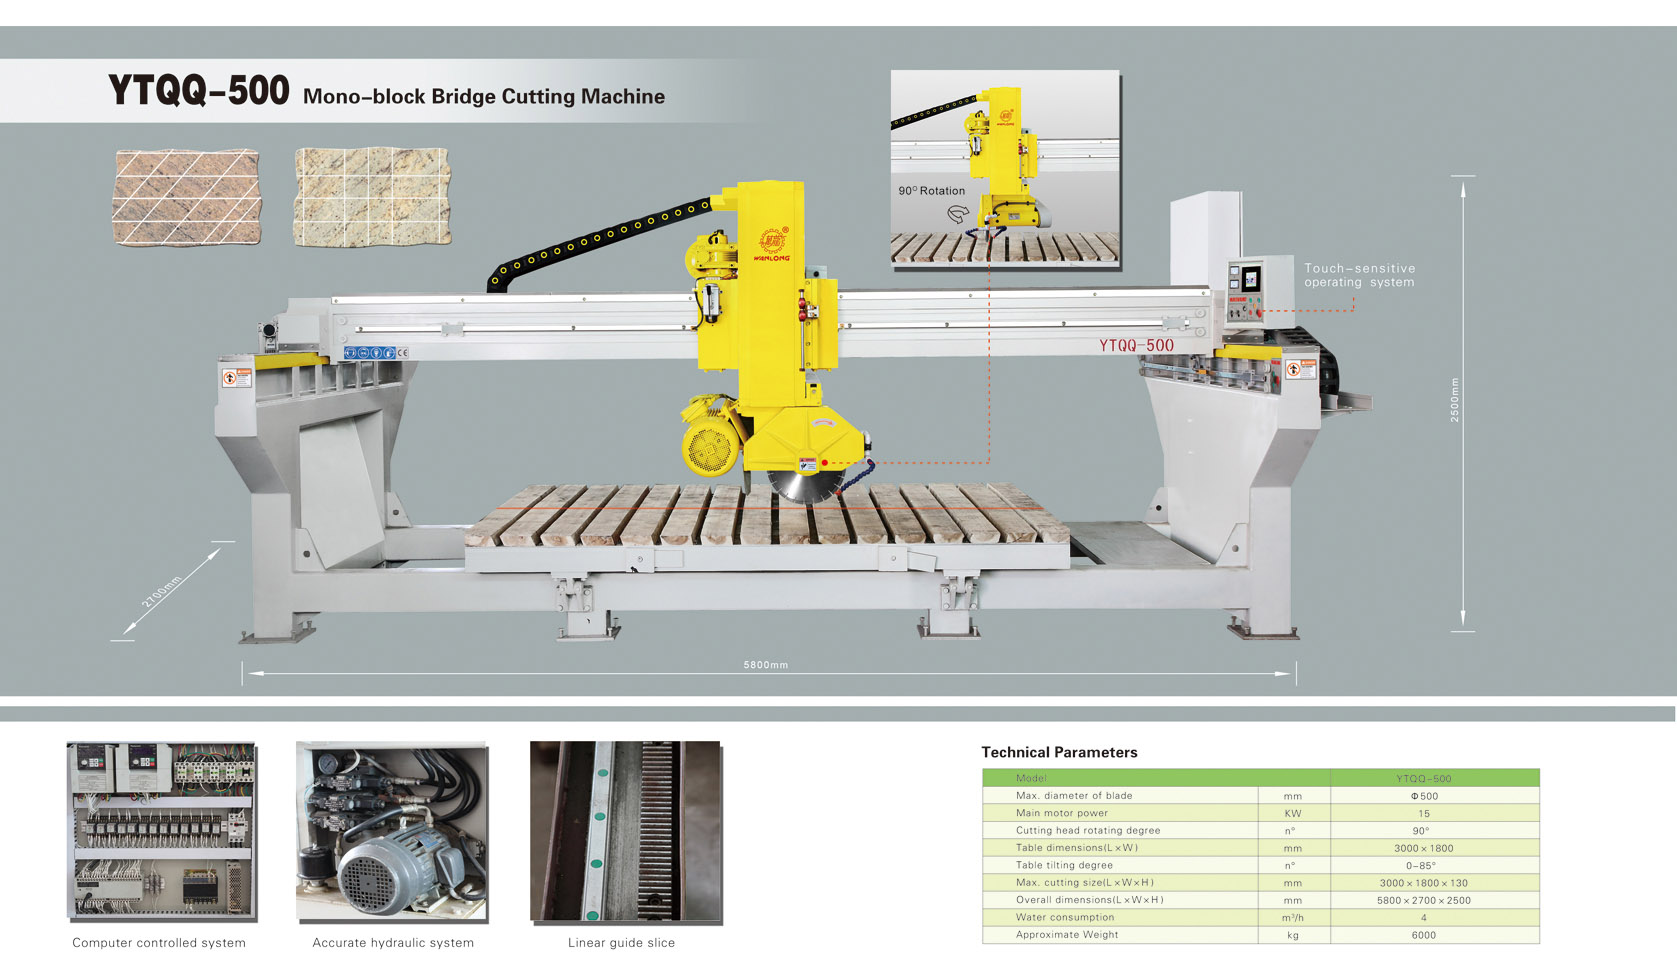 YTQQ-500Mono-block Bridge Cutting Machine,bridge cutting machine,bridge cutting machinery,bridge cutter,stone cutting machinery,wanlong stone cutting machine